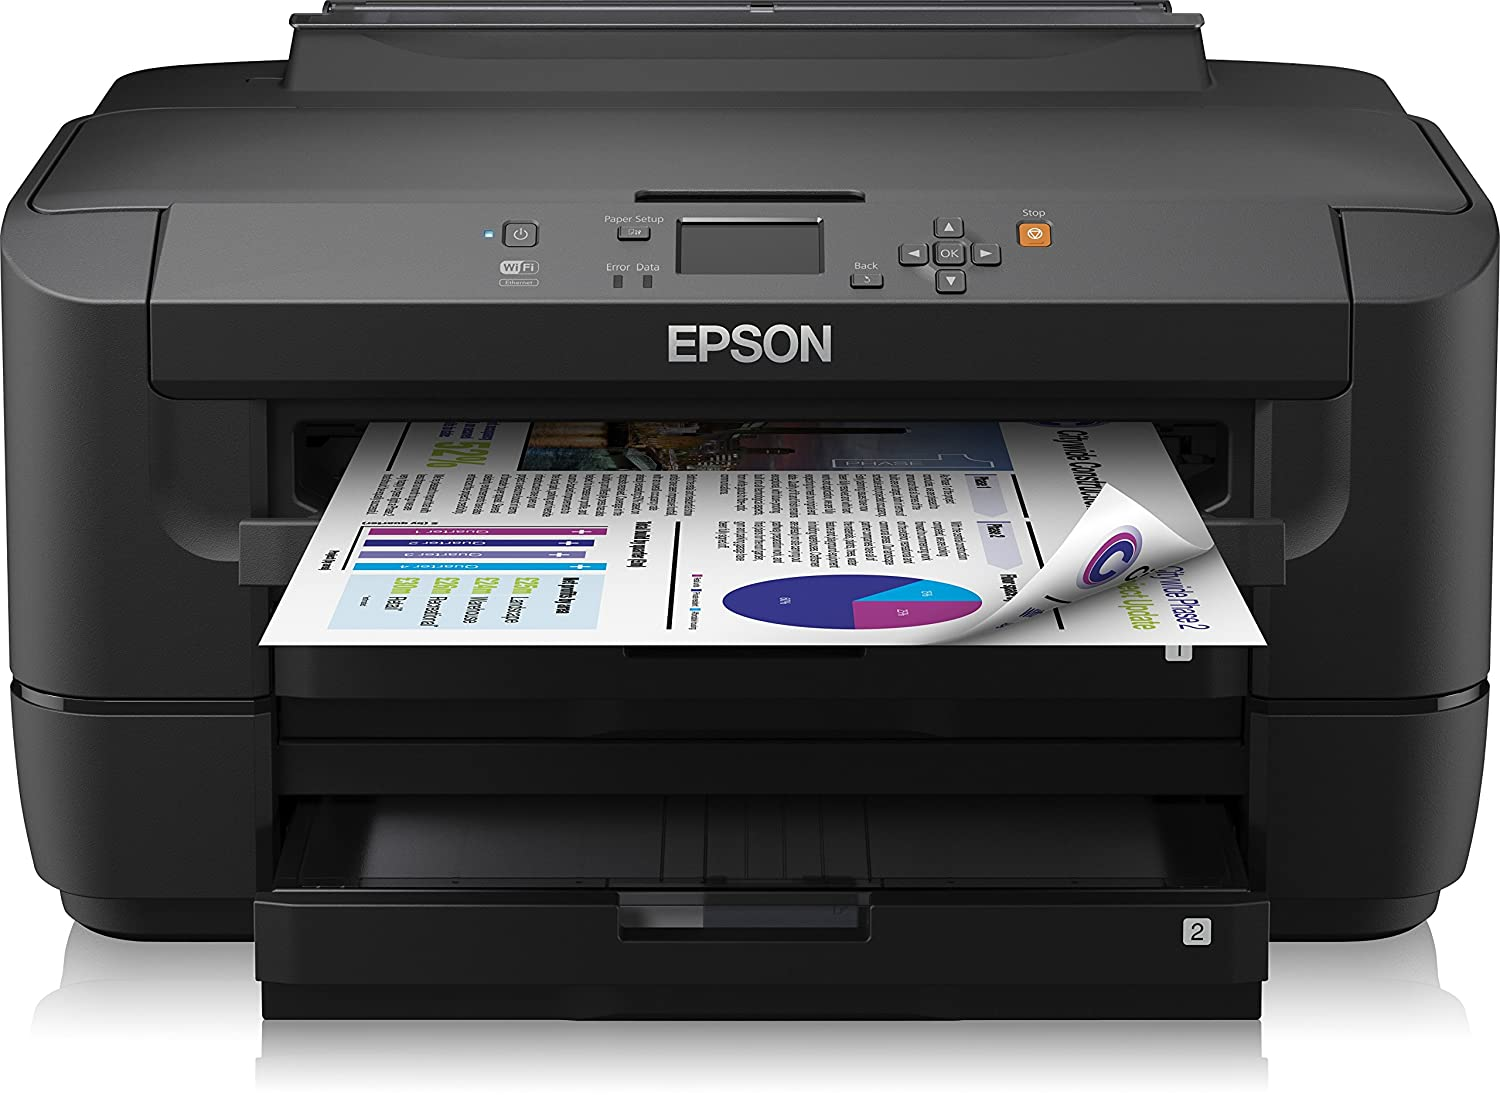 Epson WorkForce WF DTW Impresora a color WiFi WiFi Direct y Ethernet